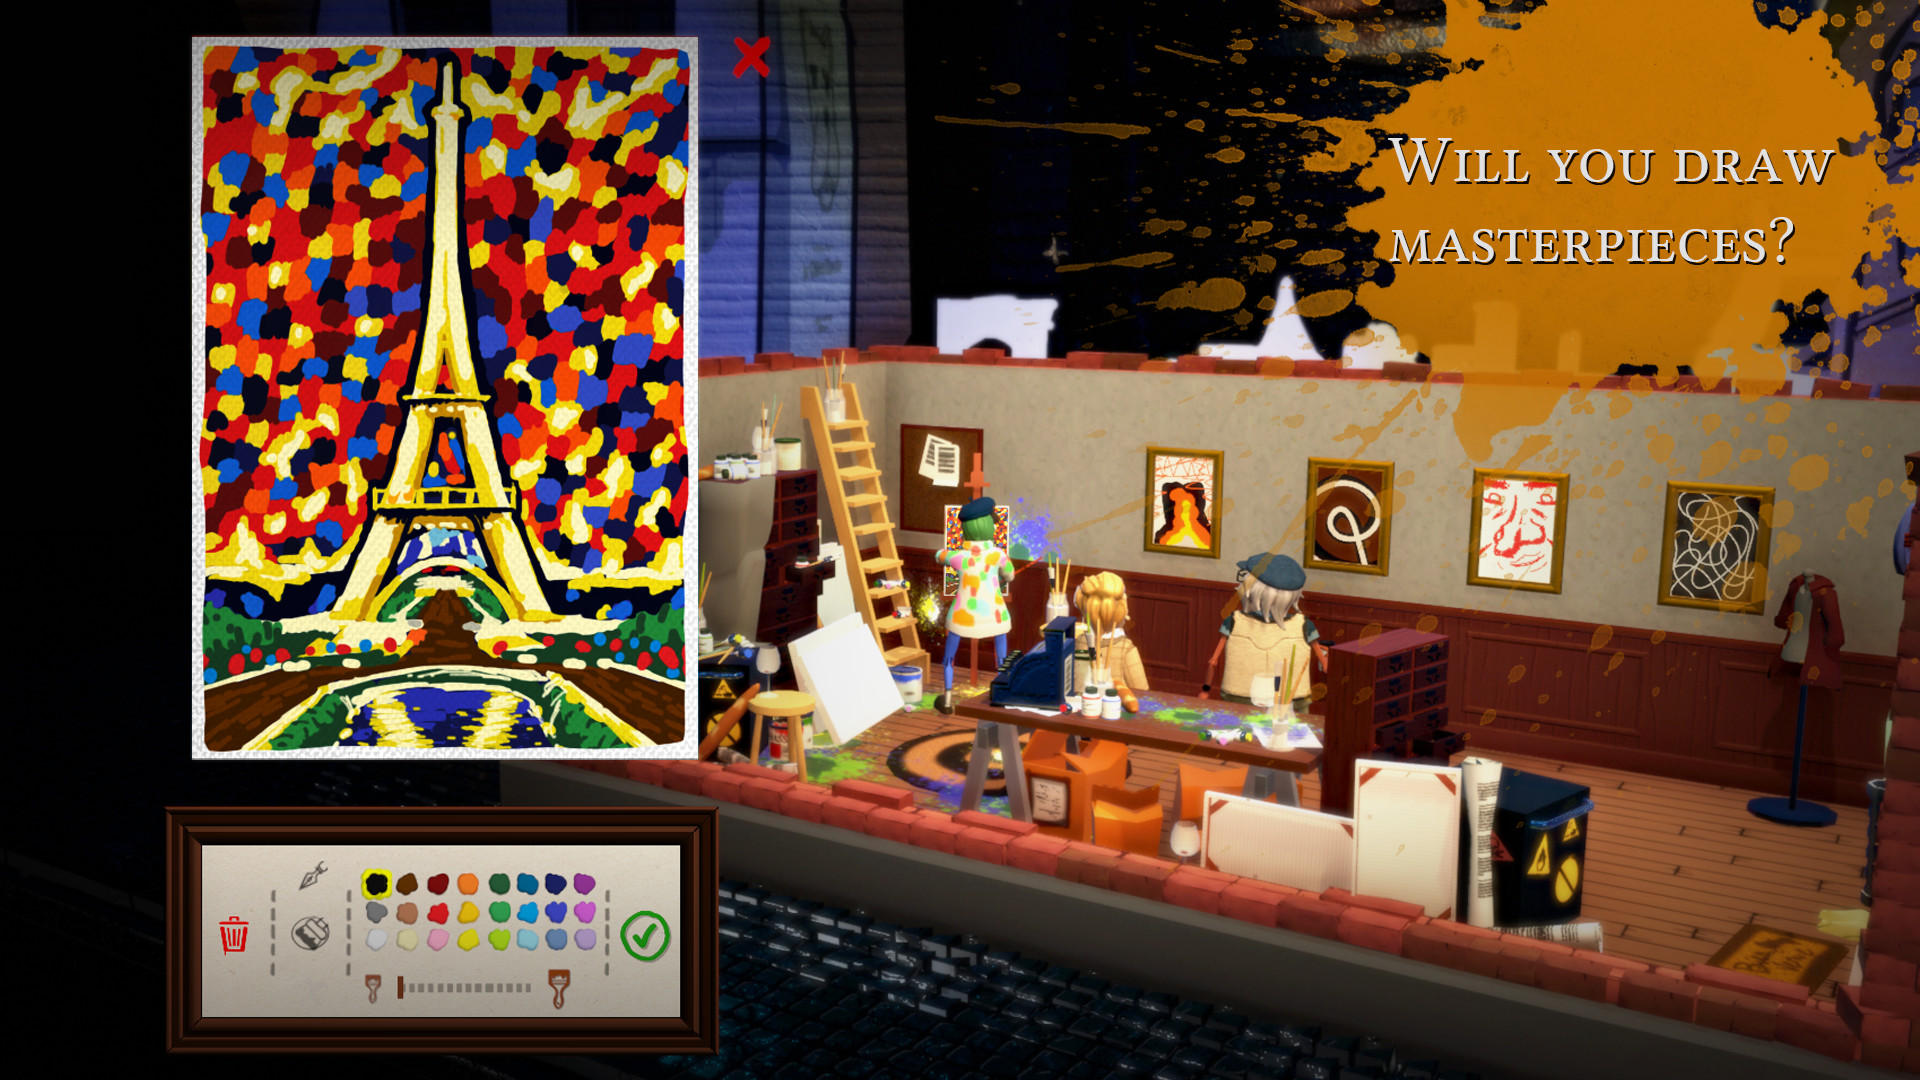 PASSPARTOUT THE STARVING ARTIST V1.7.2 FREE DOWNLOAD